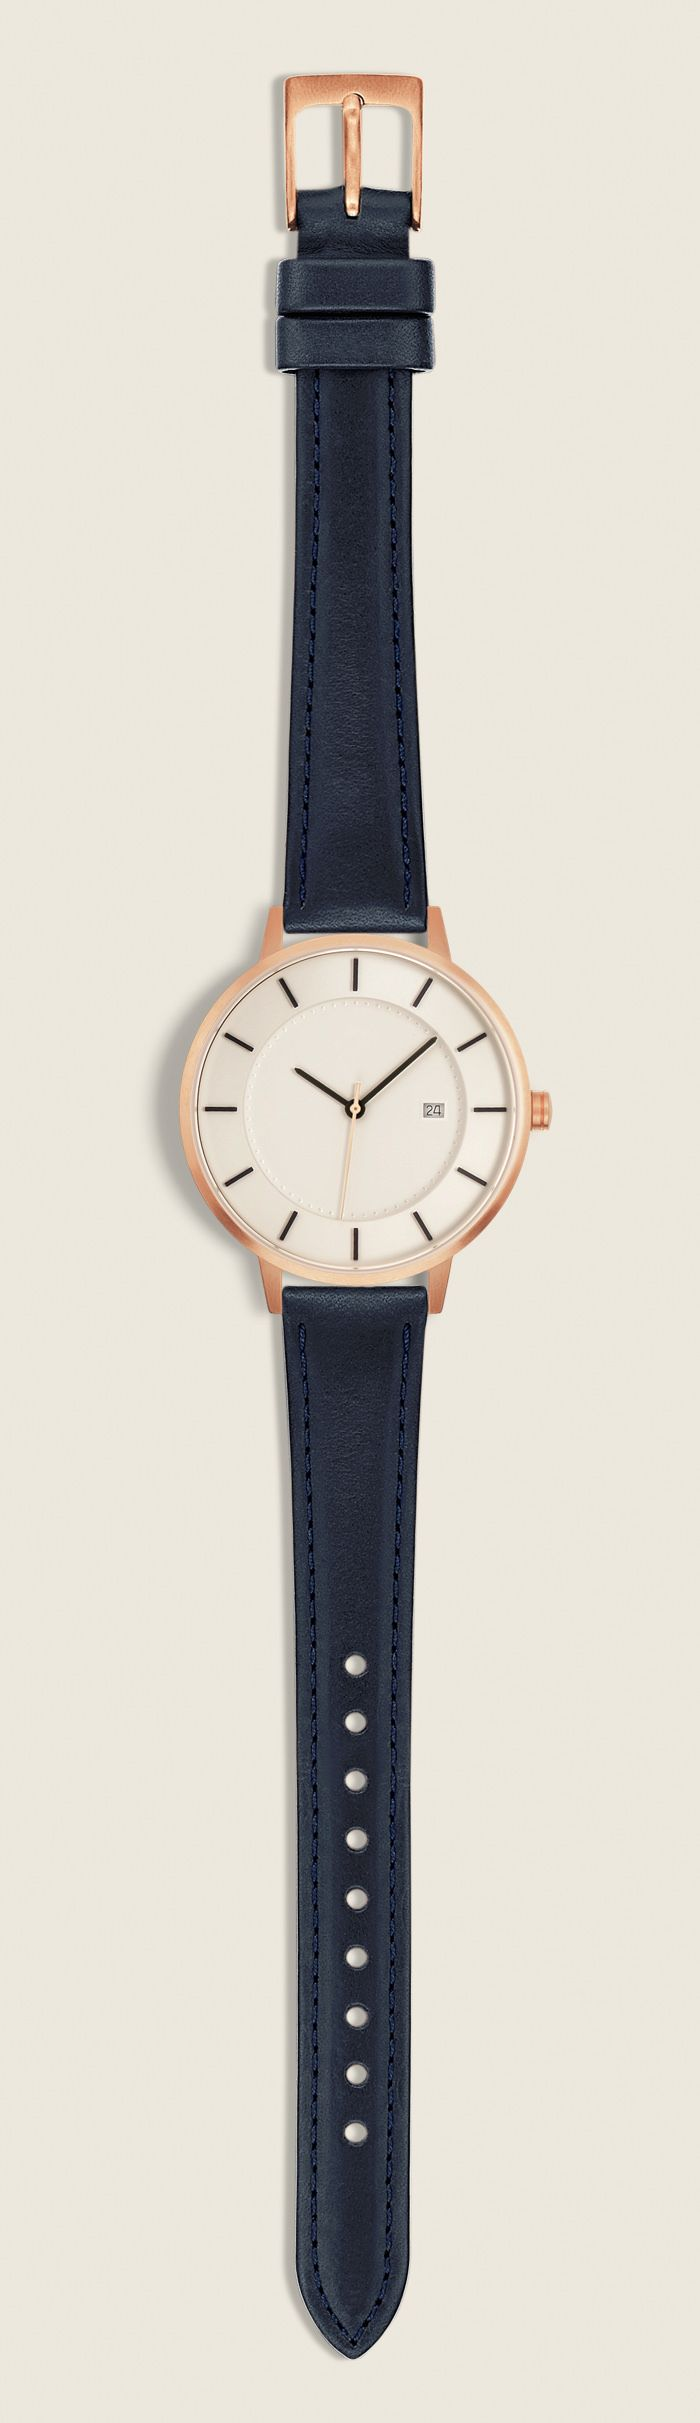 The Classic, 38mm, Rose gold/ Navy  Don't skive on quality. Linjer watches boast vegetable tanned leather straps, Swiss Quartz movement, and a gorgeous design